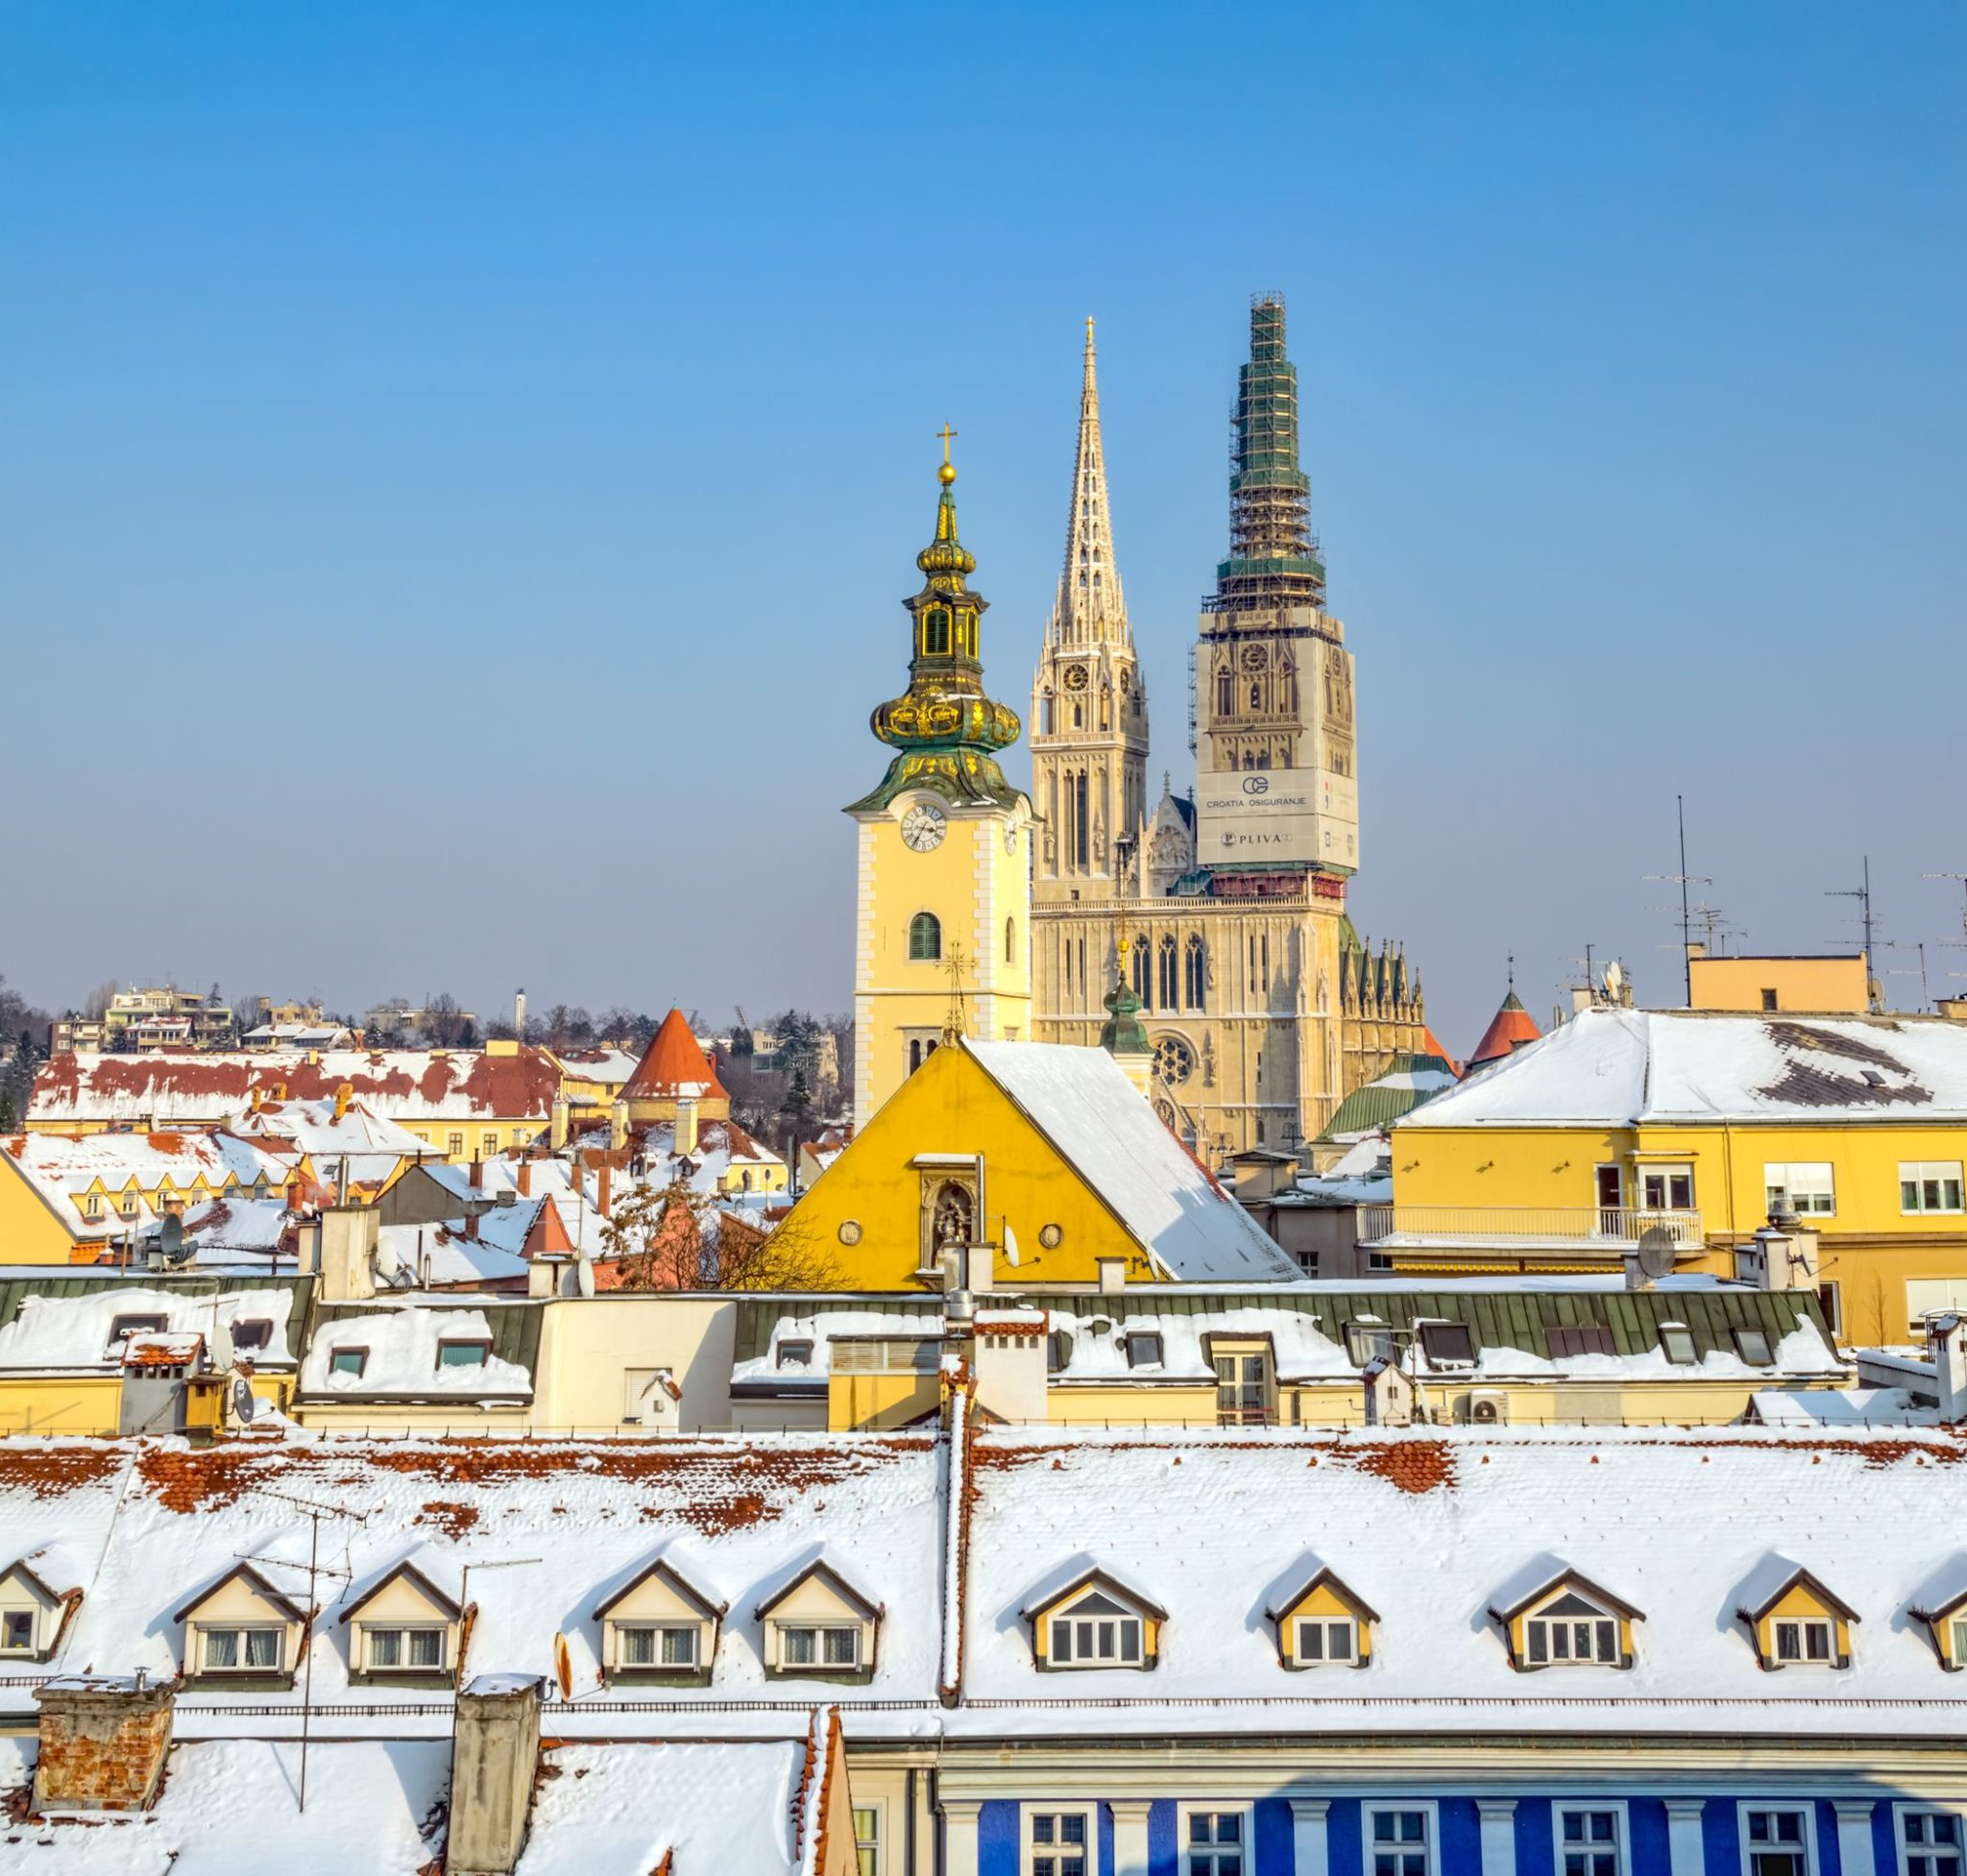 Old town and cathedral from Gradec in Zagreb, Croatia